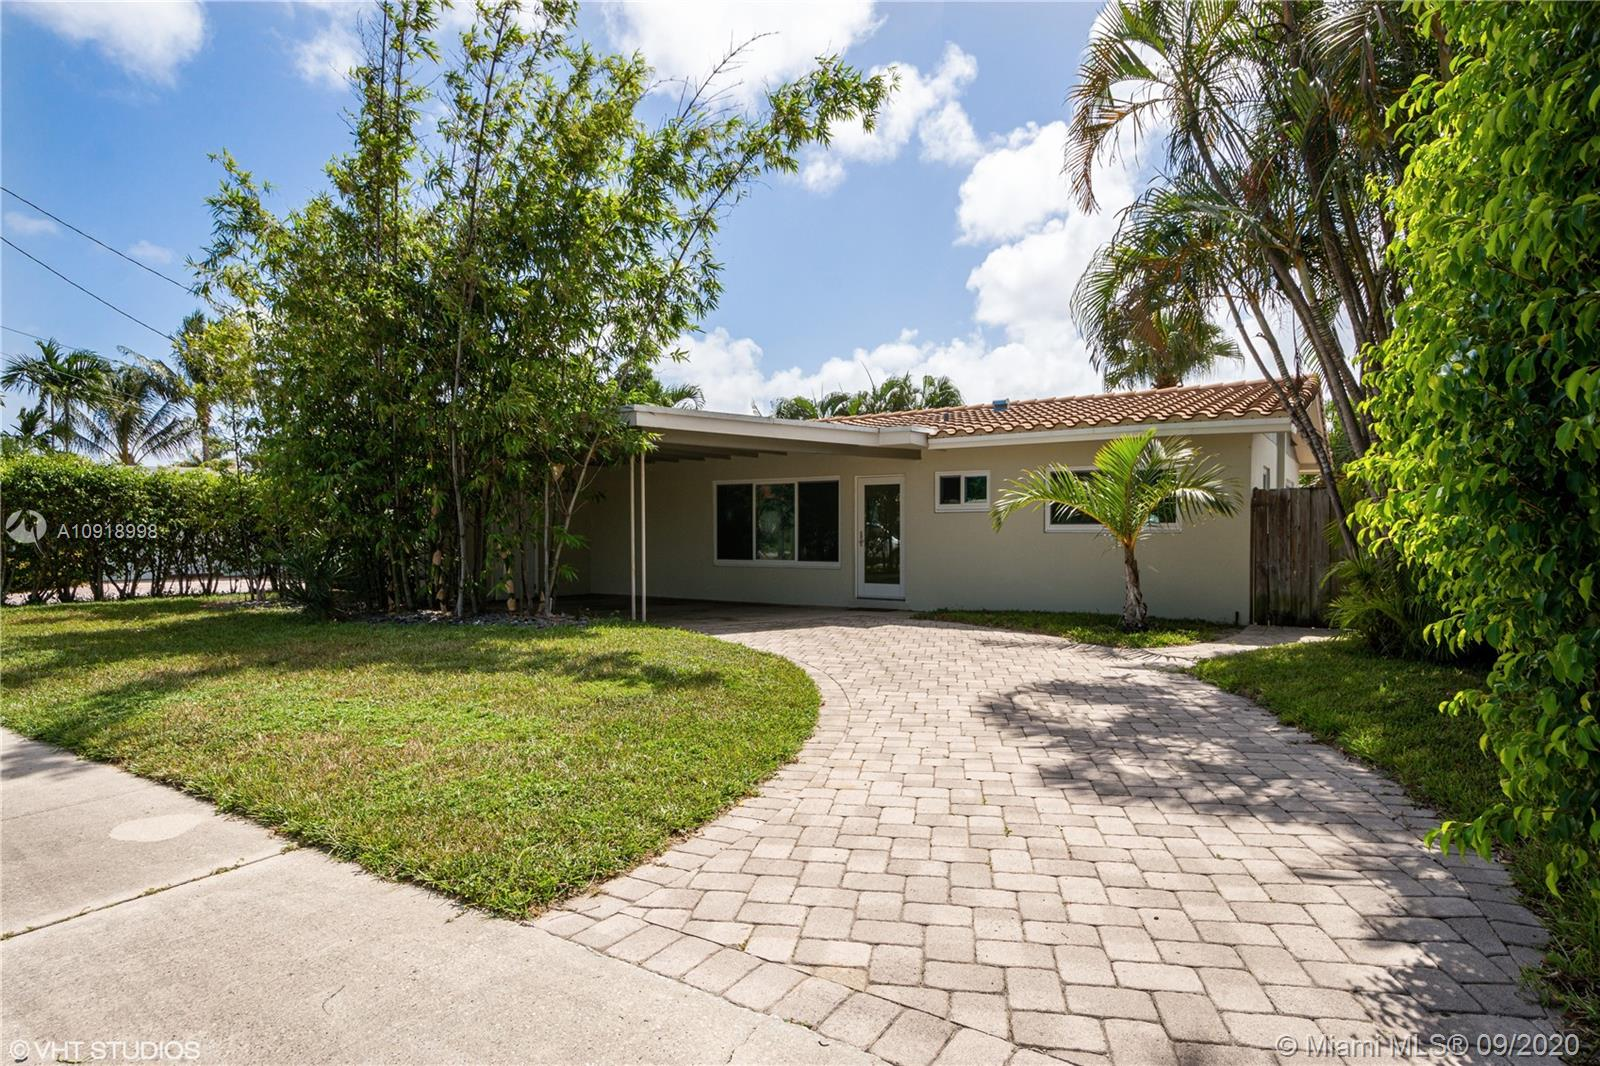 Unique opportunity to own this decorator ready house with pool and dock in Malelauca Gardens, Dania Beach. Choose and install your own kitchen, baths, and floors.  Easy access to the ocean.  Boating enthusiast bring your boat!This house has new soundproof, hurricane impact windows and doors, air-conditioning, air handler, ducting and insulation, barrel tile roof, upgraded electrical, and recessed lighting recently installed throughout.  Just 4 miles to the beach and just a few steps to the Greenbelt Park with a walking trail, and grassy area for picnics.   Dania Pointe shopping center is nearby.  Excellent dining and entertainment on Las Olas and Hard Rock Hotel and Casino in Hollywood is only a few minutes away.  Easy to show.  Please text me or call me.